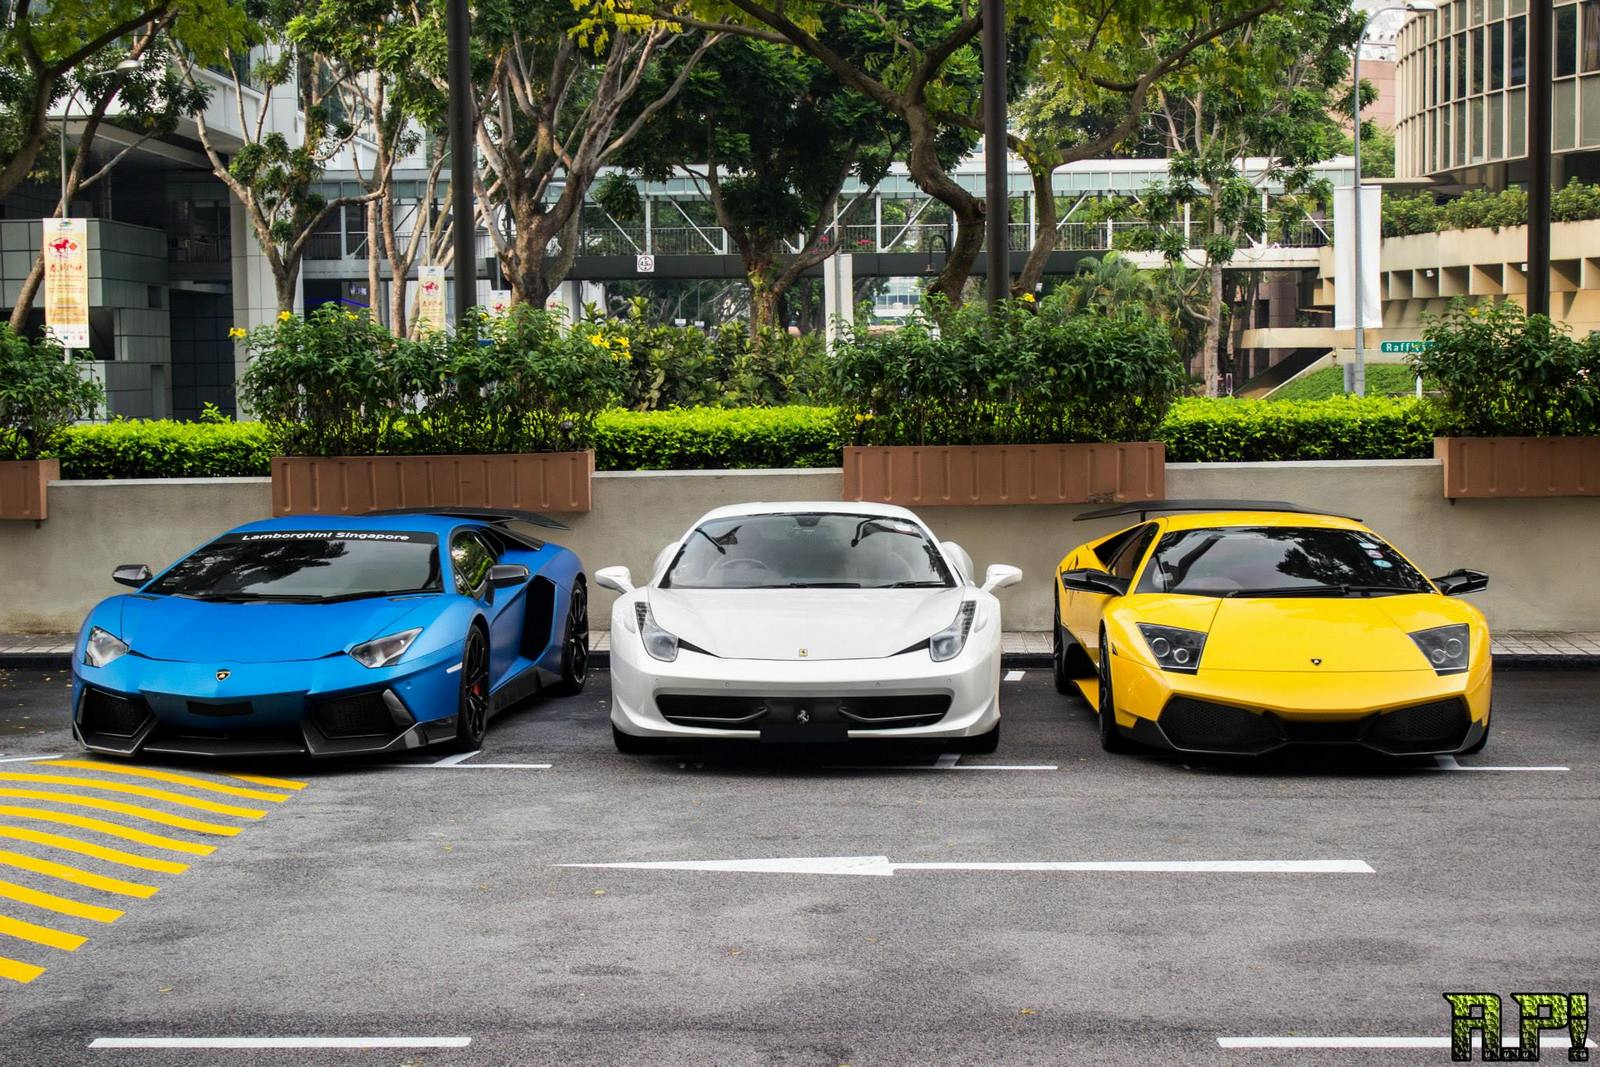 Gallery: 2014 Exotics Car Club CNY Gathering in Singapore - GTspirit